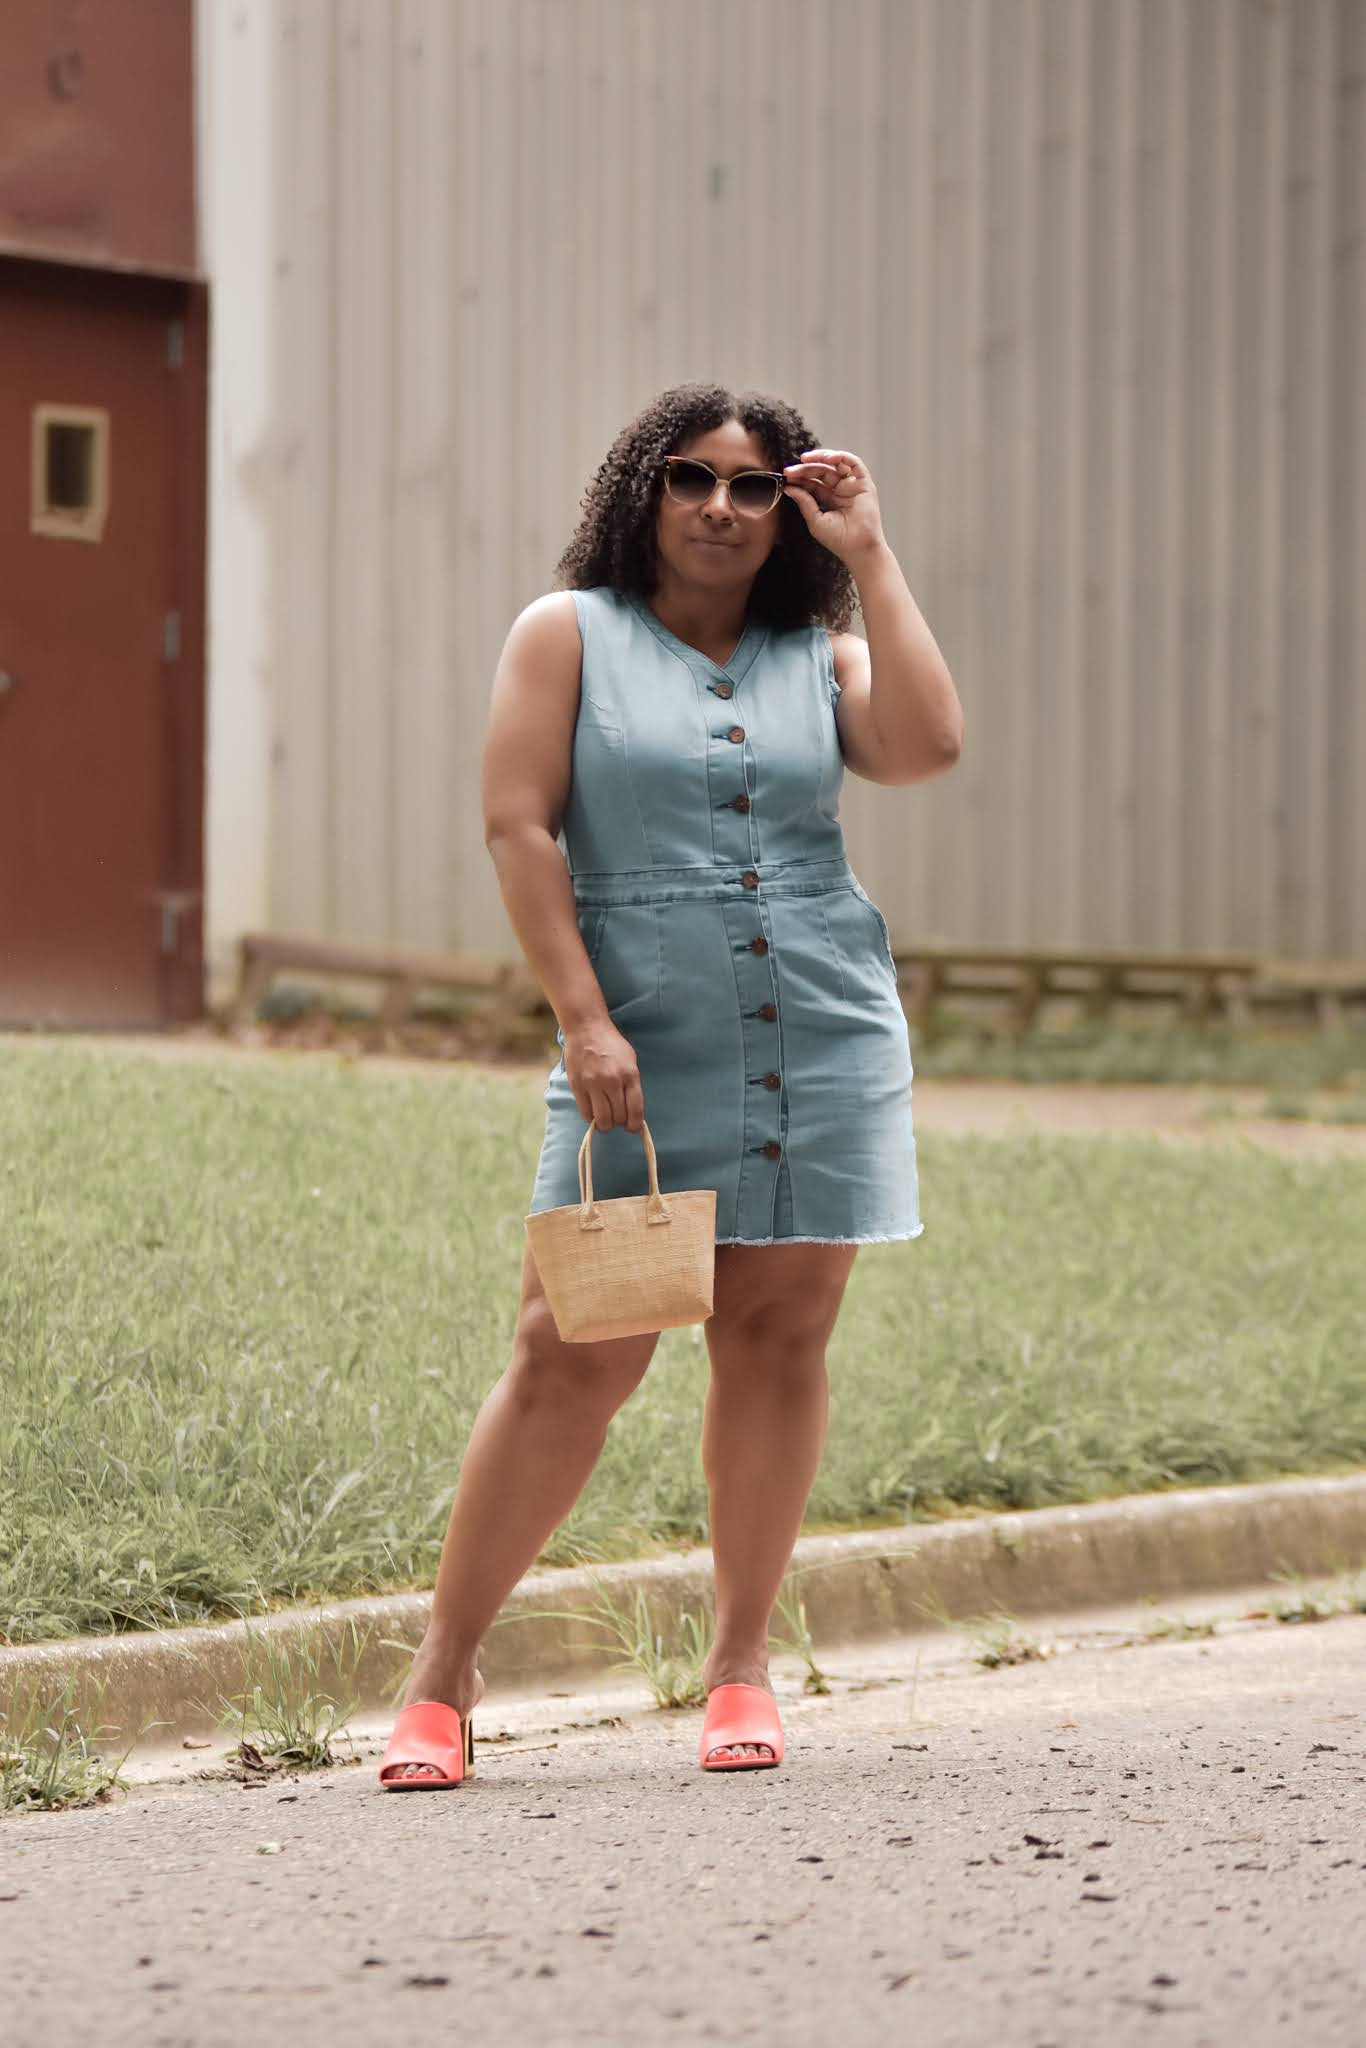 lookbook store, lookbook tsore reviews, denim dress, denim dress outfit ideas, how to style denim, denim trend 2020, pattys kloset, fashionable mom outfits